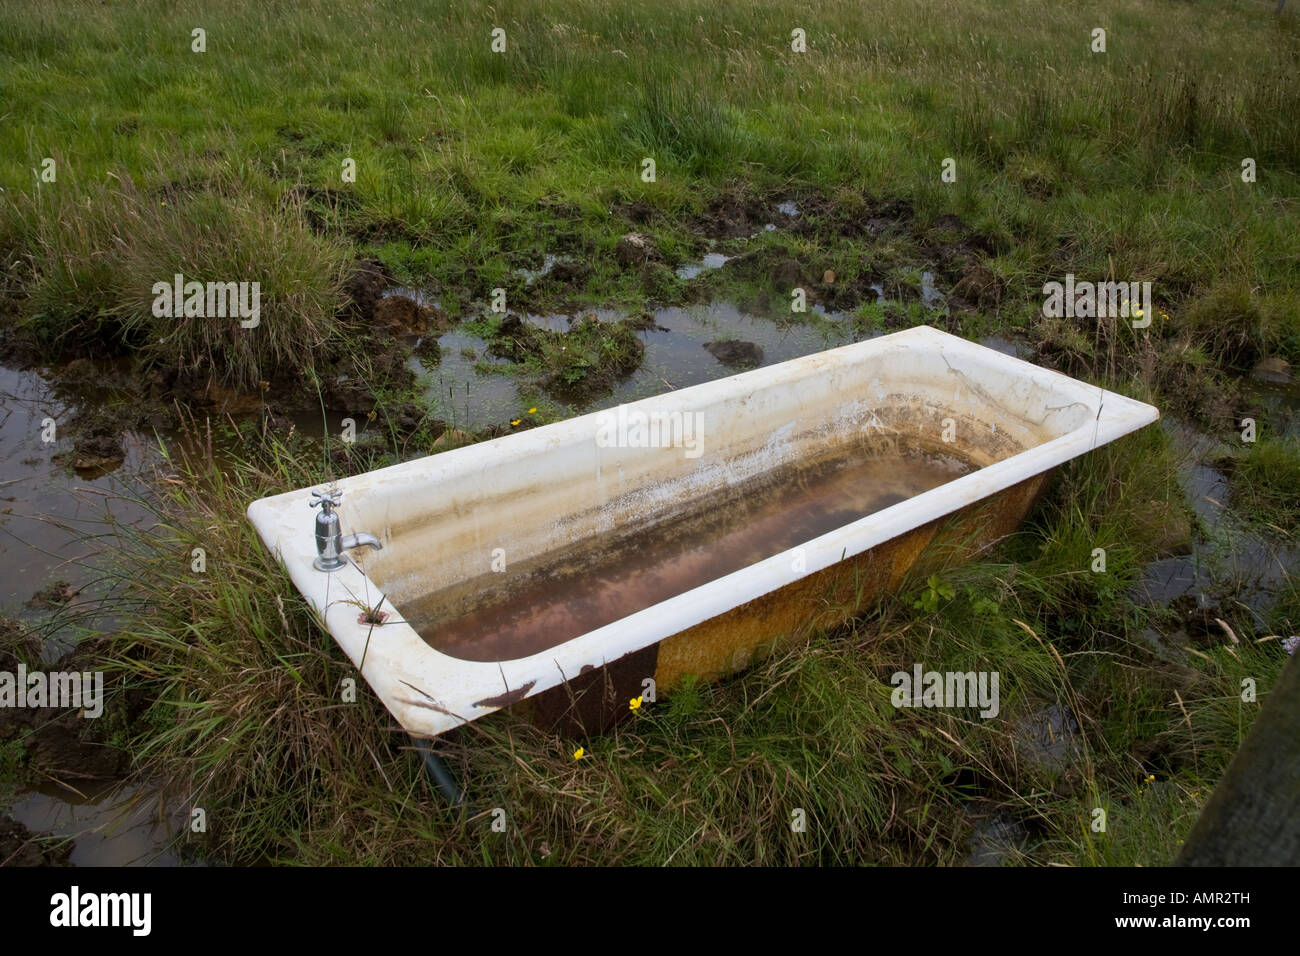 An Old Bathtub Filled With Water In A Field On The Isle Of Skye Scotland  UK. Bathtubs Are Used As Water Troughs For Livestock.